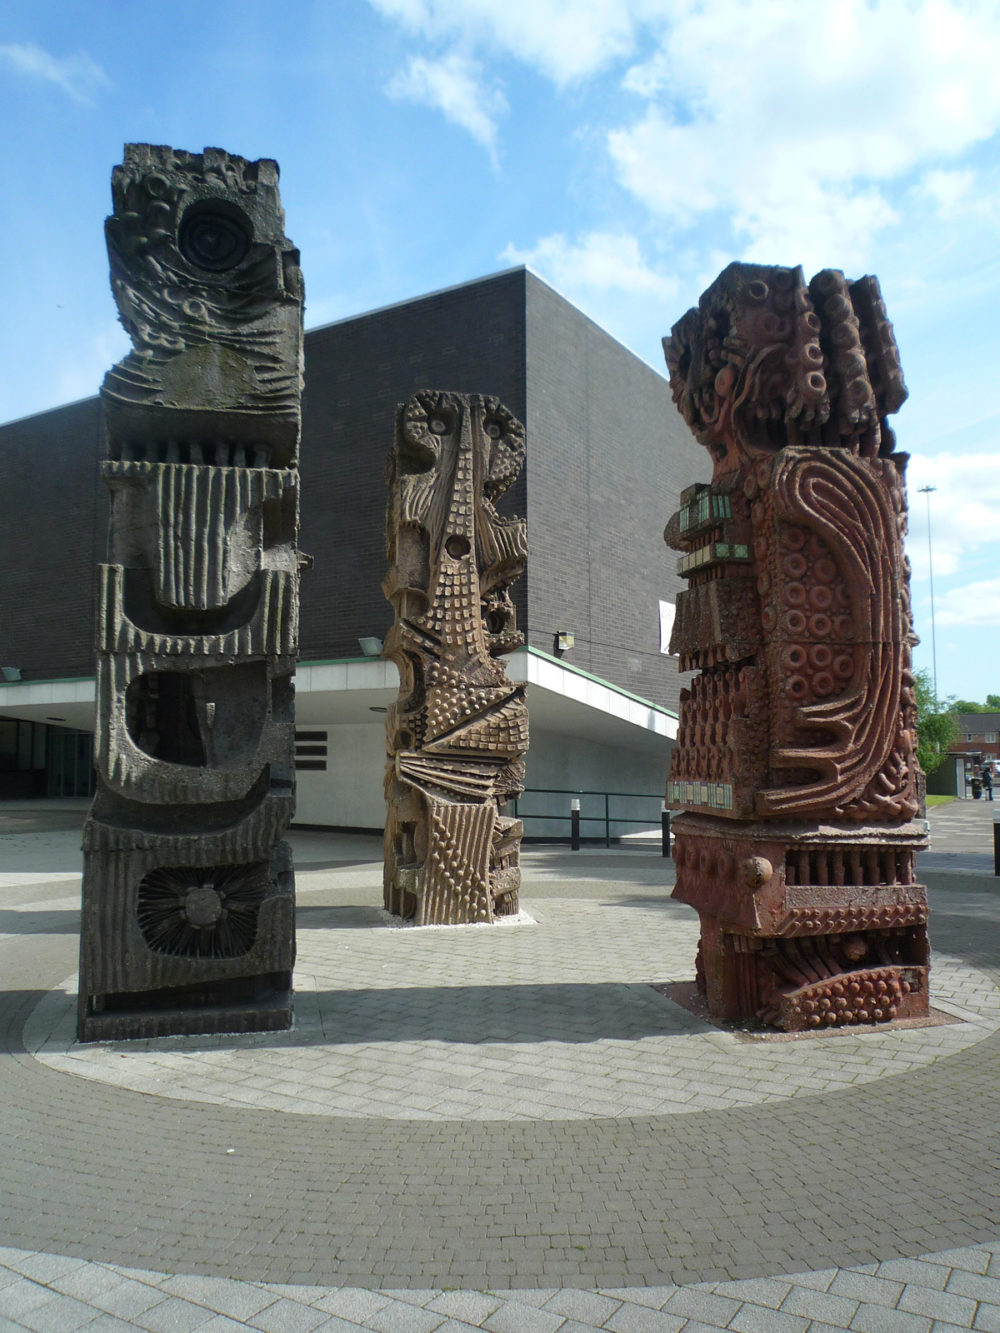 Trio of totems: Built by William Mitchell for the University of Salford in 1966, these totems are preserved as an example of the commissioning of public artwork in the post-war period.